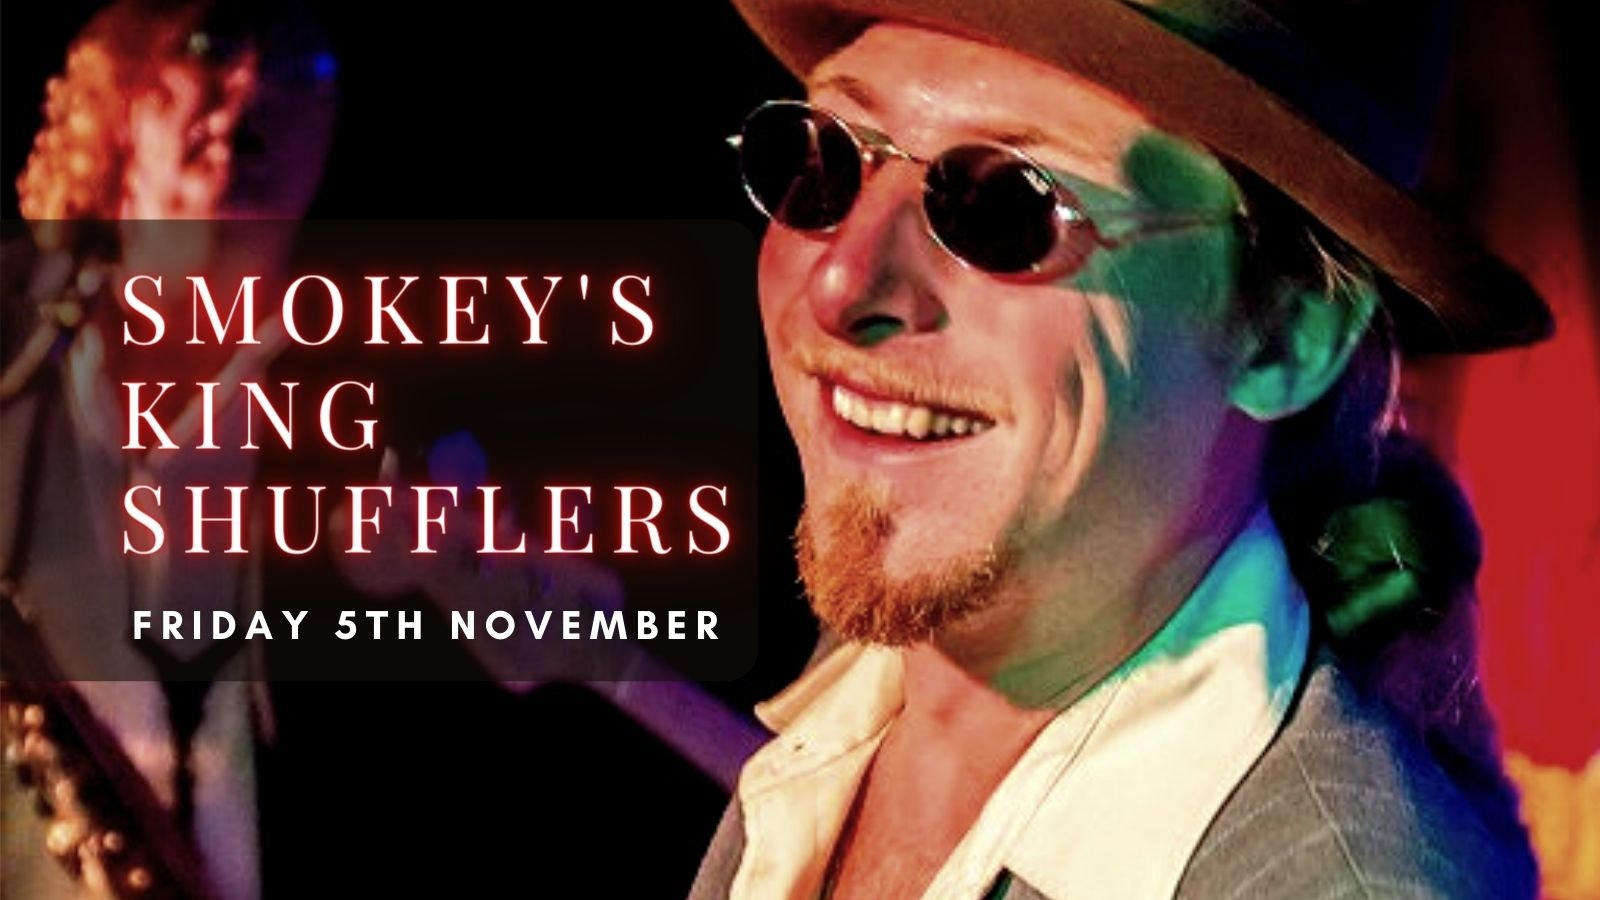 SMOKEY'S KING SHUFFLERS | Plymouth, Annabel's Cabaret & Discotheque